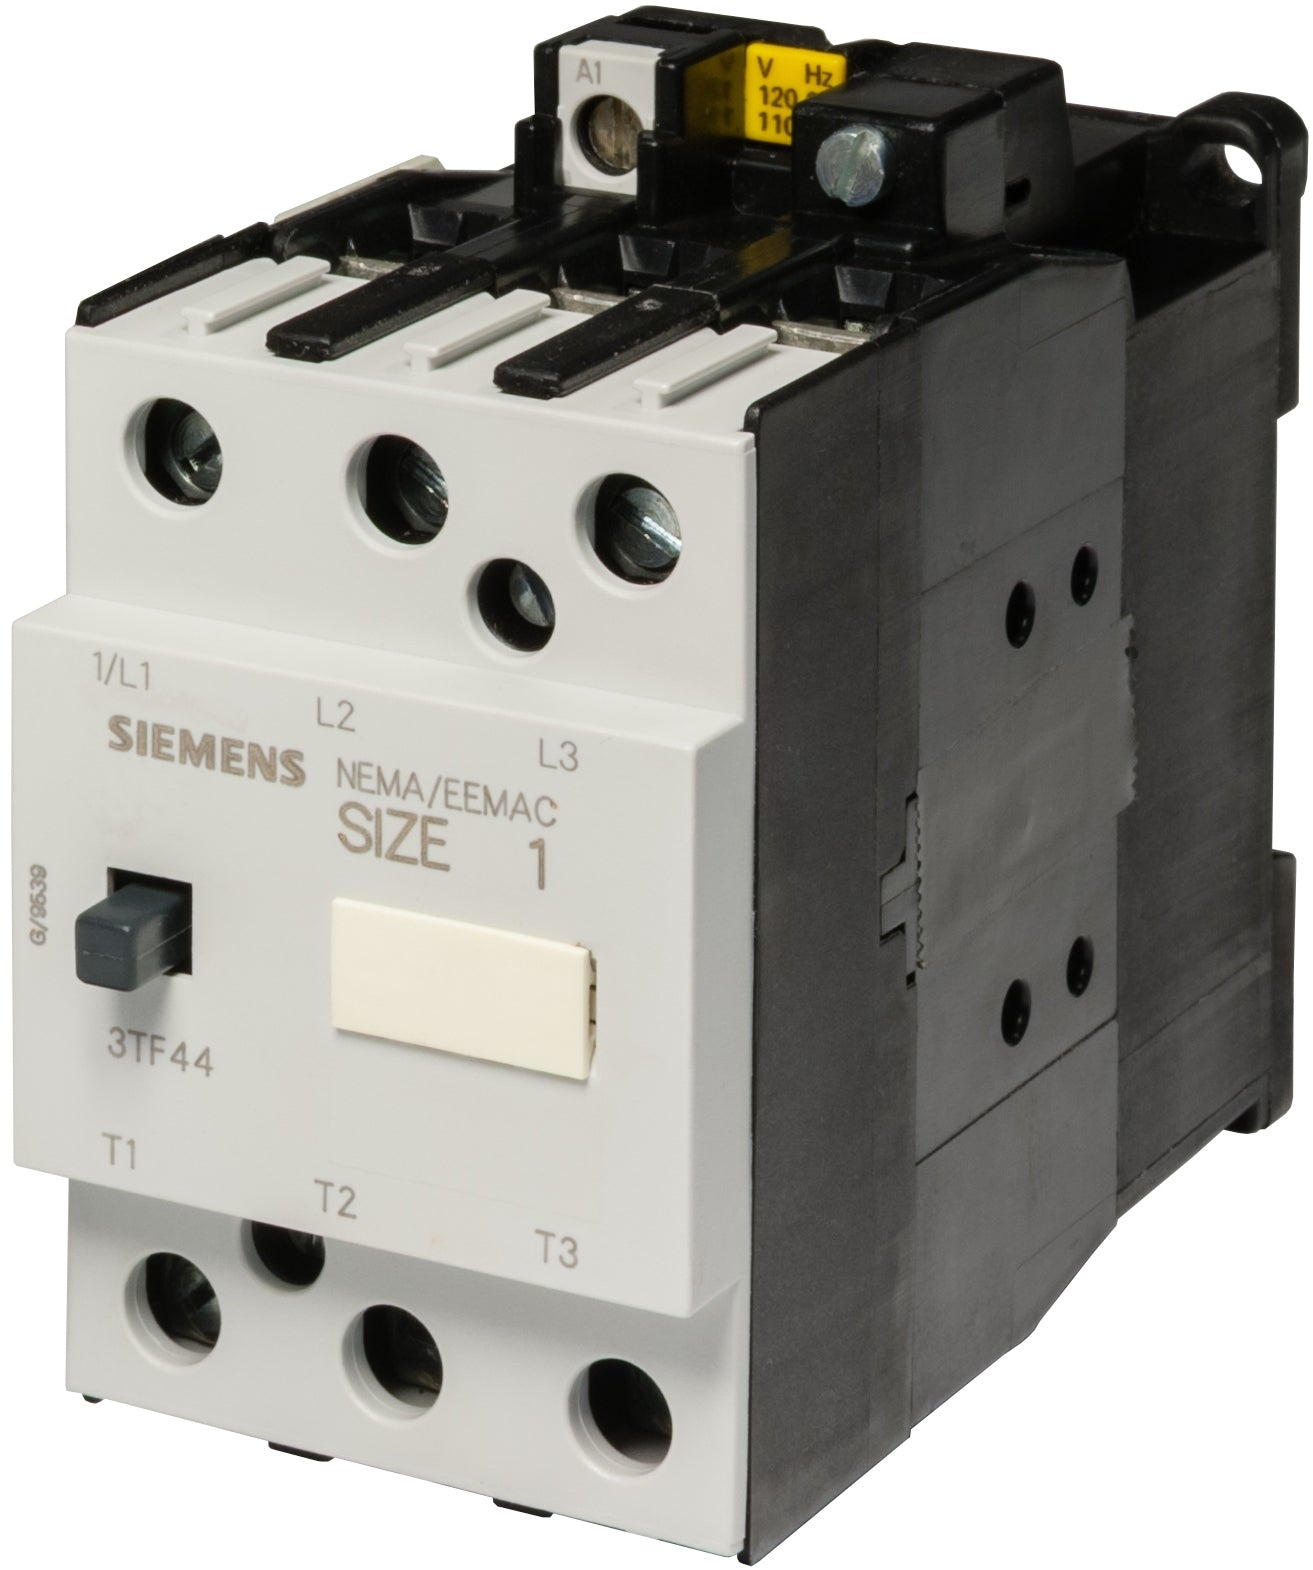 3tf4 Contactors Motor Starters Siemens 230v 3 Phase Contactor Wiring Starter Series Pole